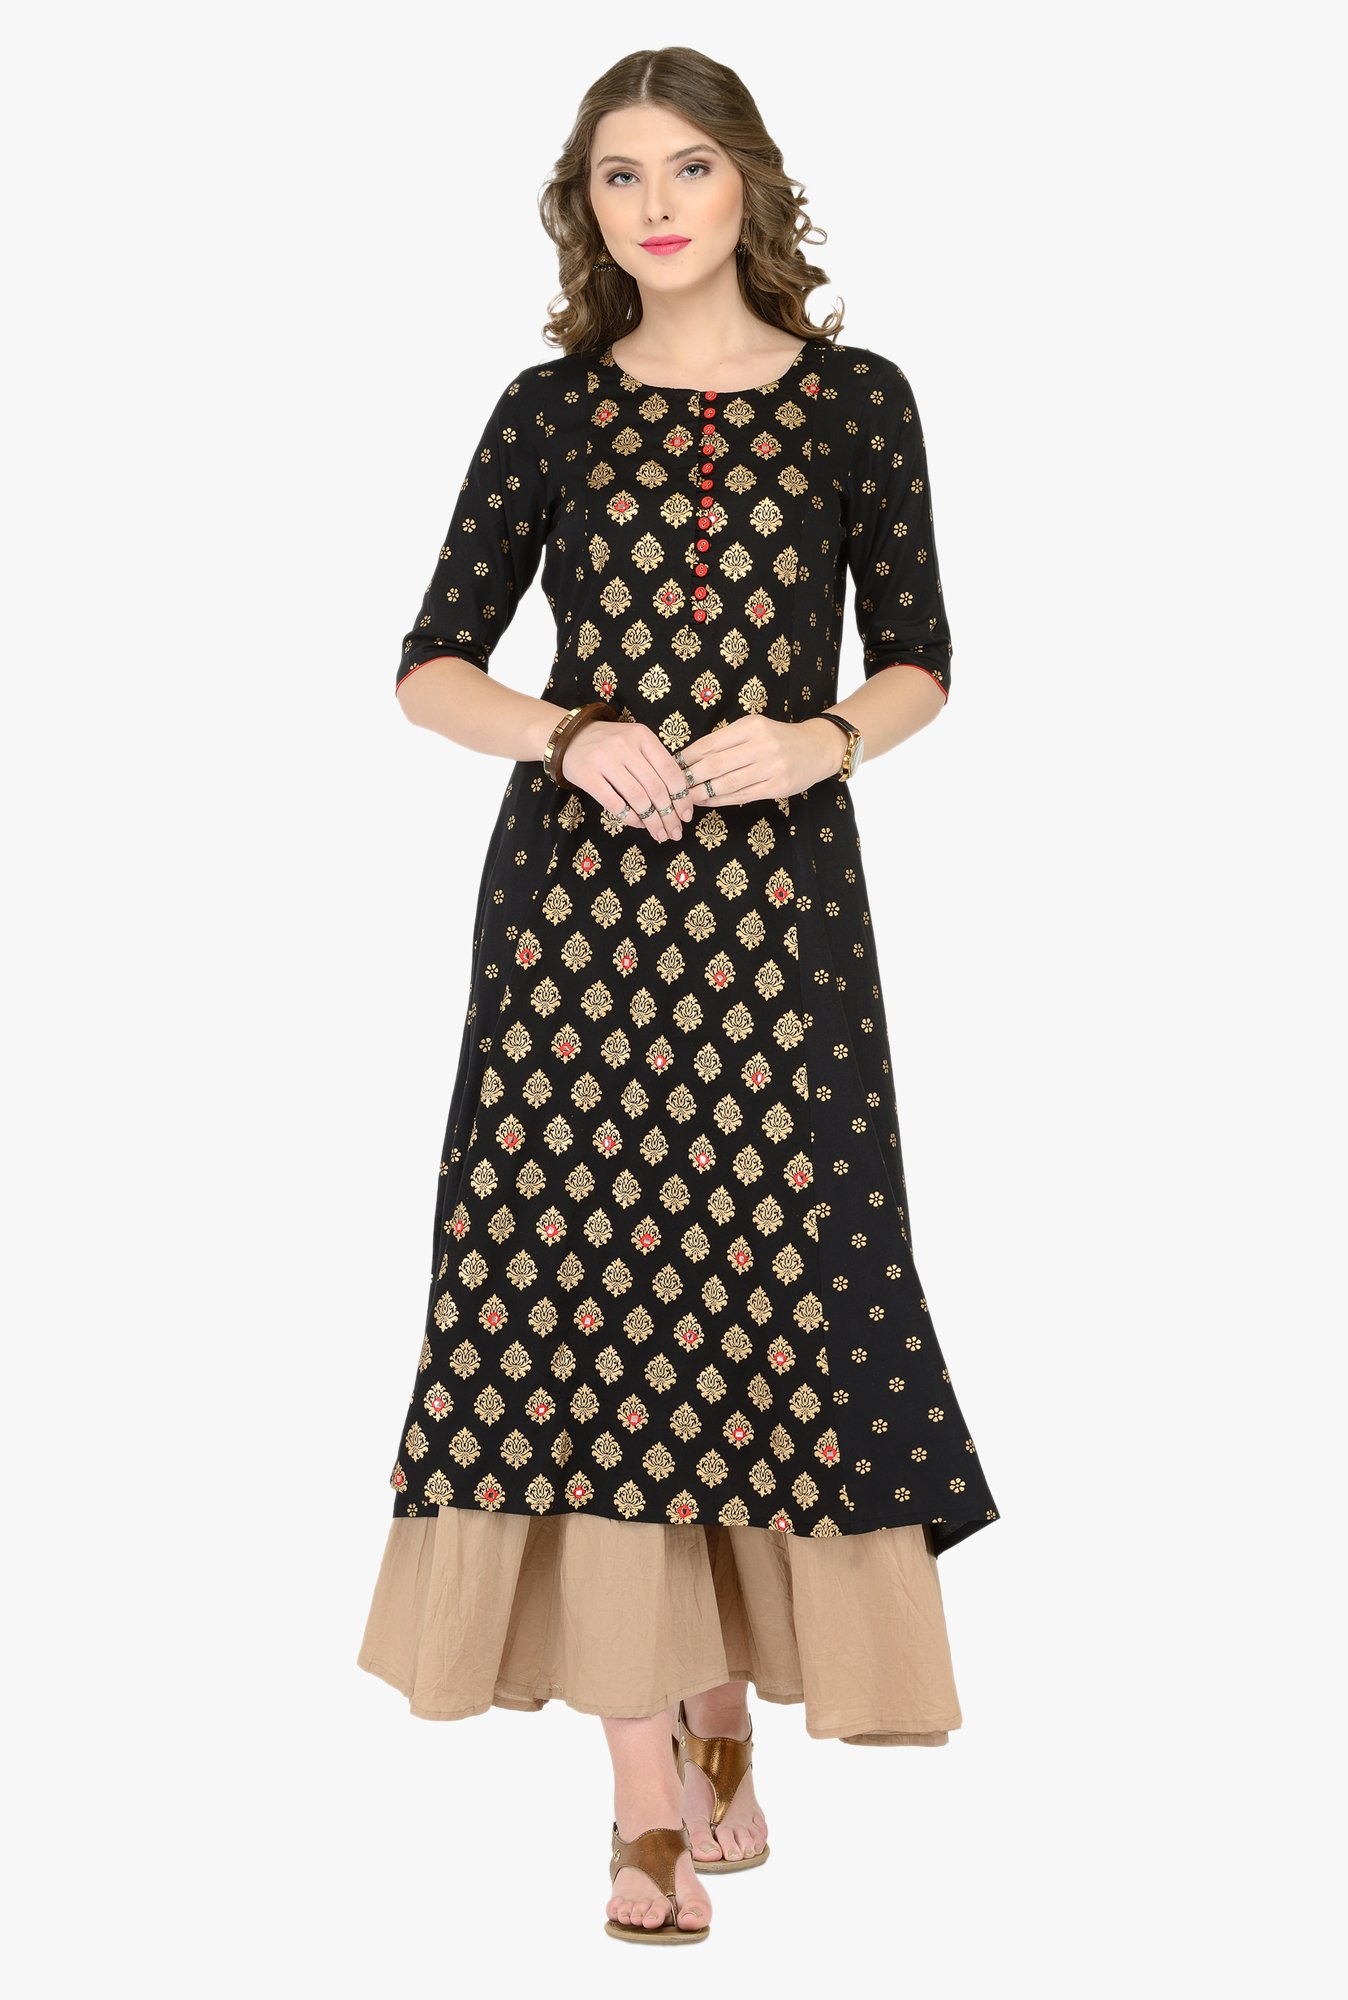 Varanga Black & Beige Printed Kurta With Palazzos